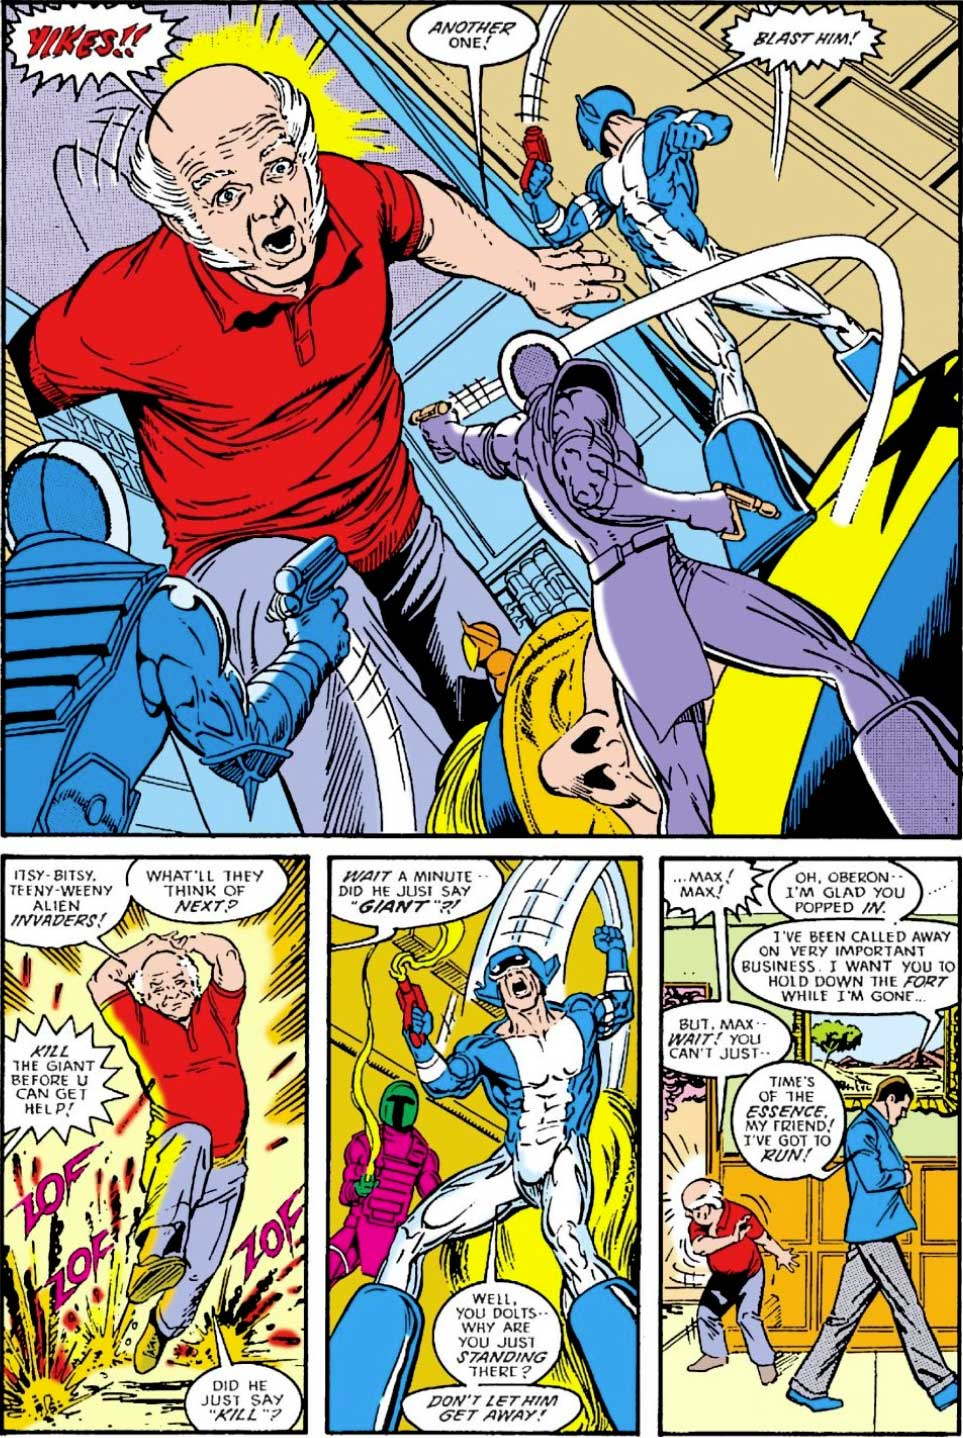 Justice League International #22 by Keith Giffen, JM DeMatteis, Kevin Maguire and Joe Rubinstein